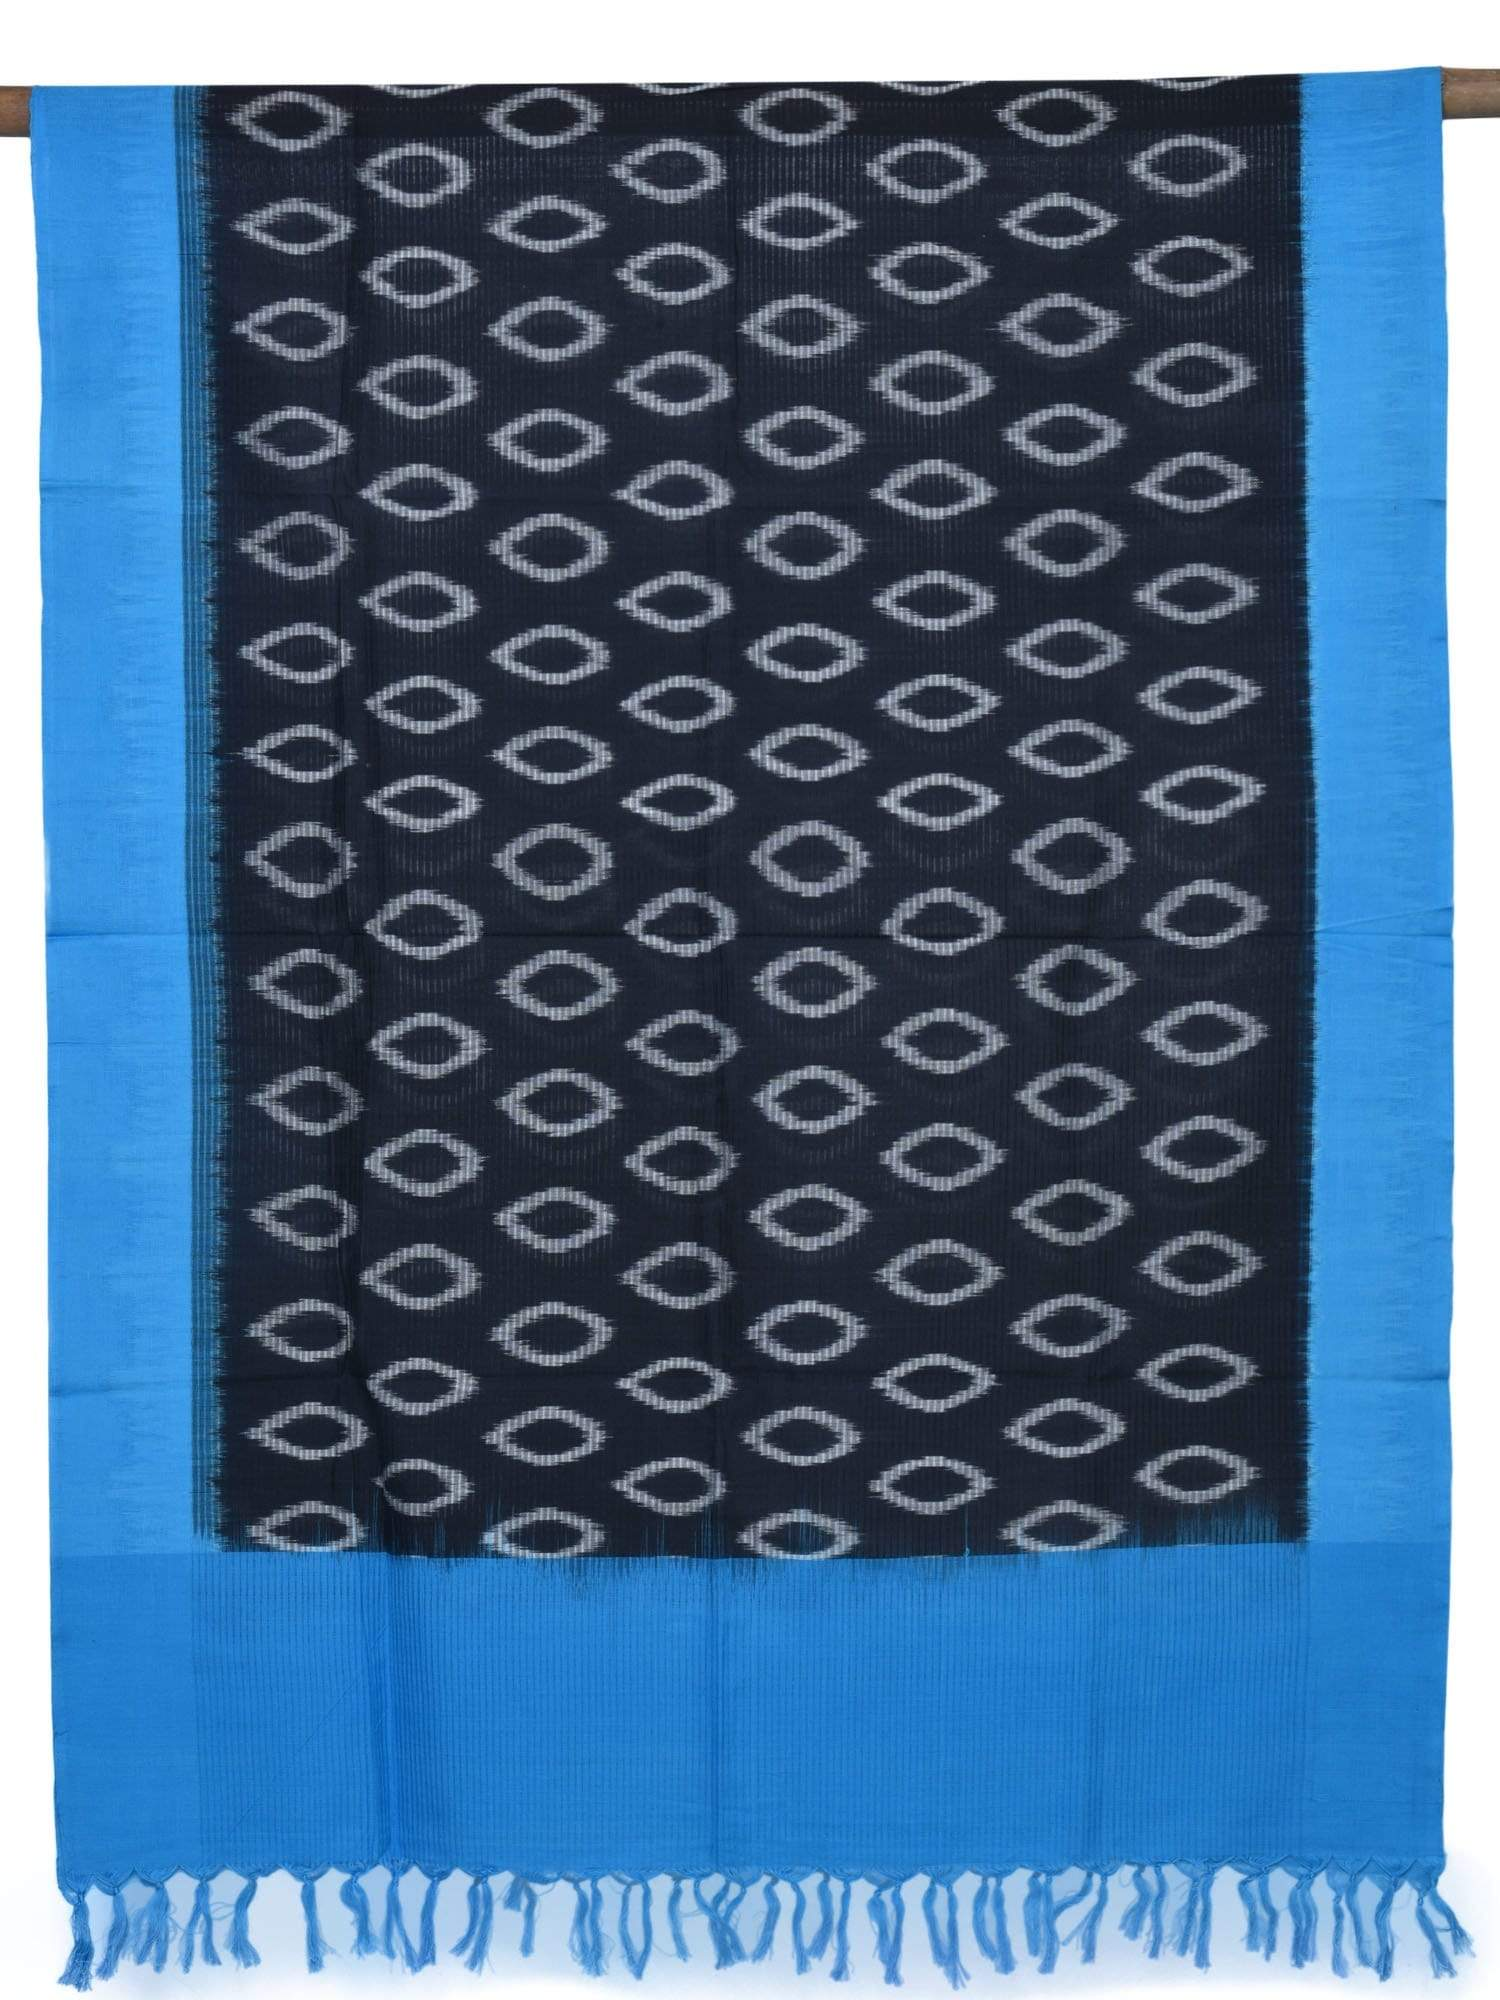 Blue and Black Pochampally Ikat Cotton Handloom Dupatta with Circles Design ds1598